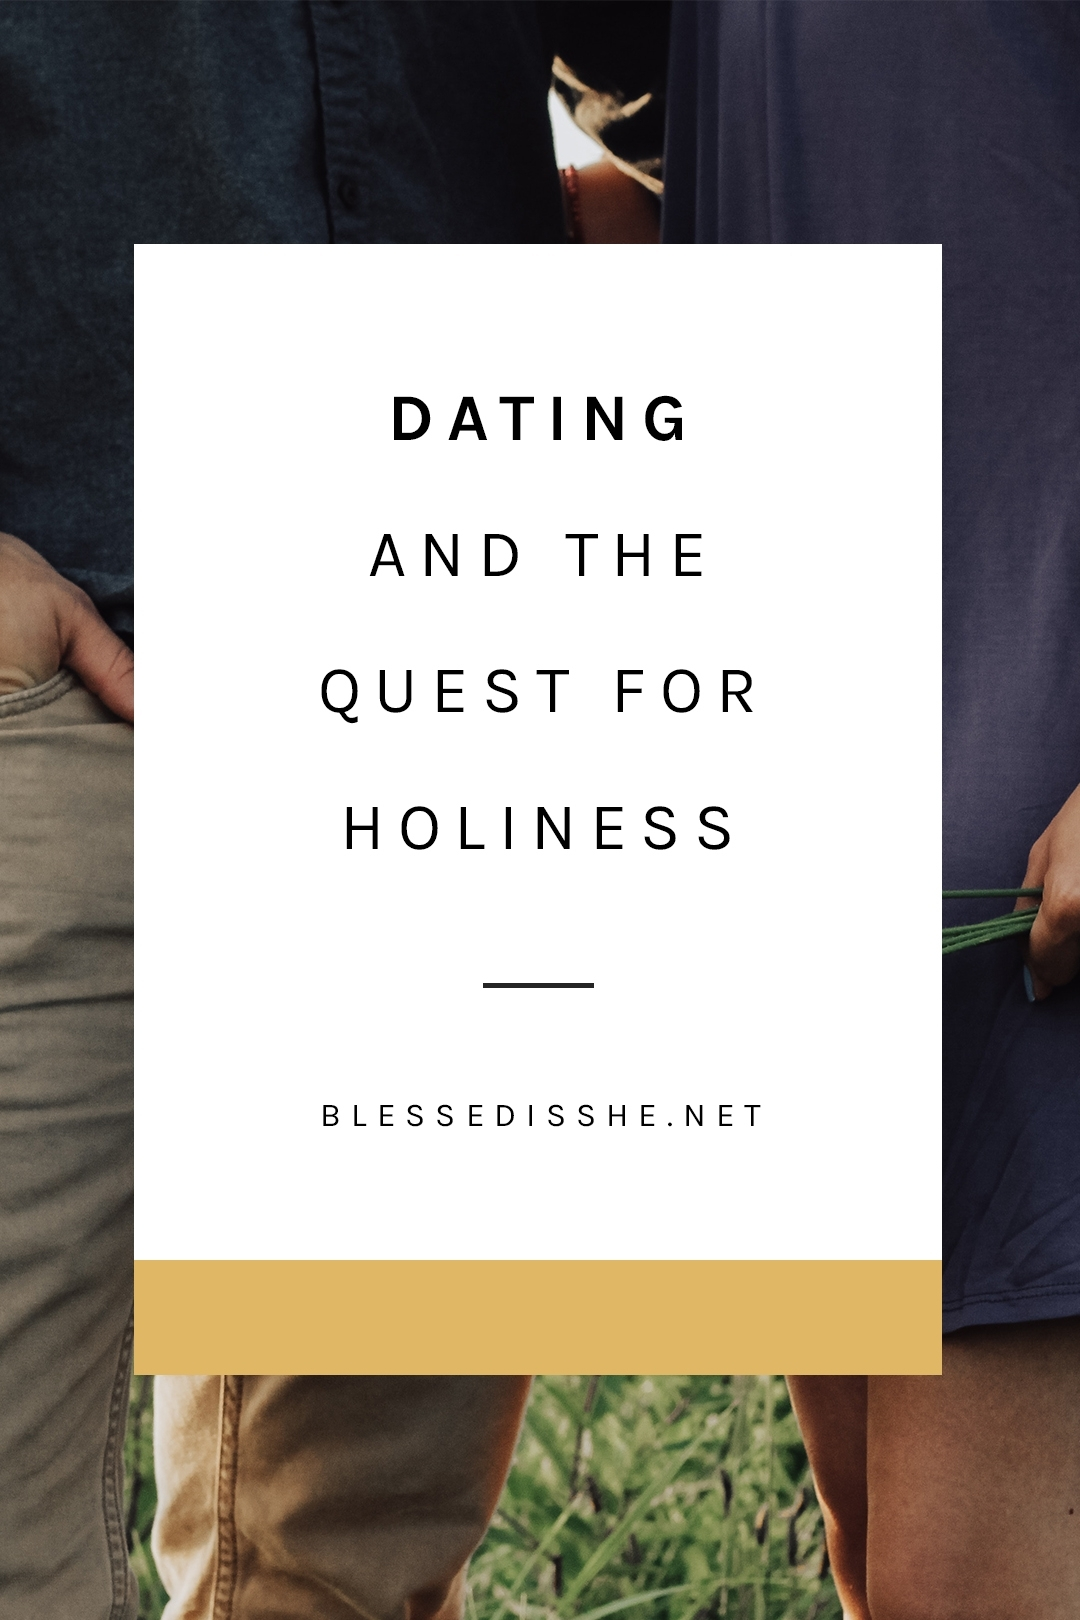 Virtuous Dating And The Quest For Holiness | Blessed Is She intended for Free Blessed Sunday Images Roman Catholic